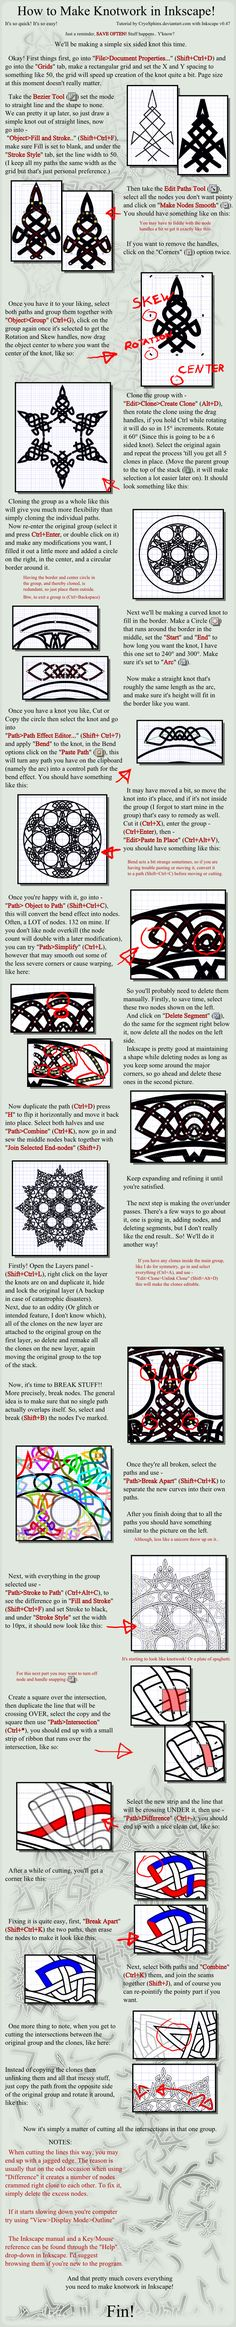 Knotwork Tutorial for Inkscape by CryoSphinx on deviantART